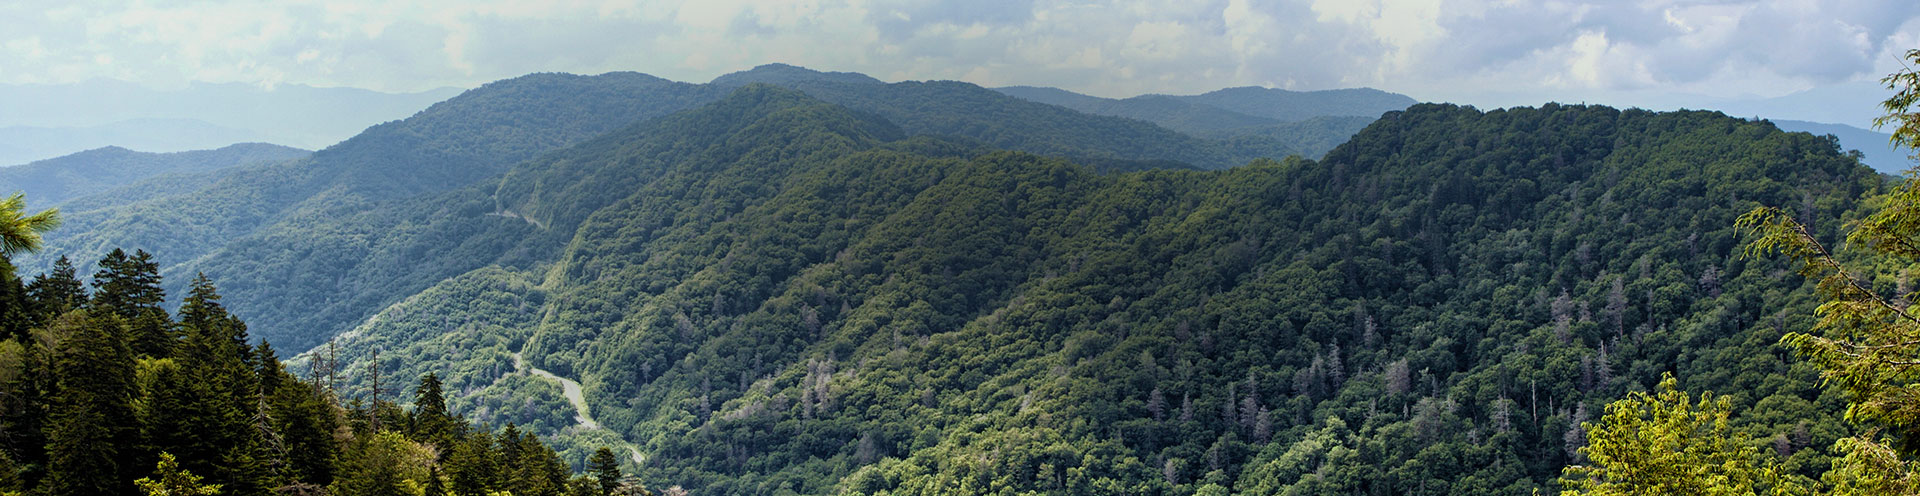 View of the Smoky Mountains in the springtime